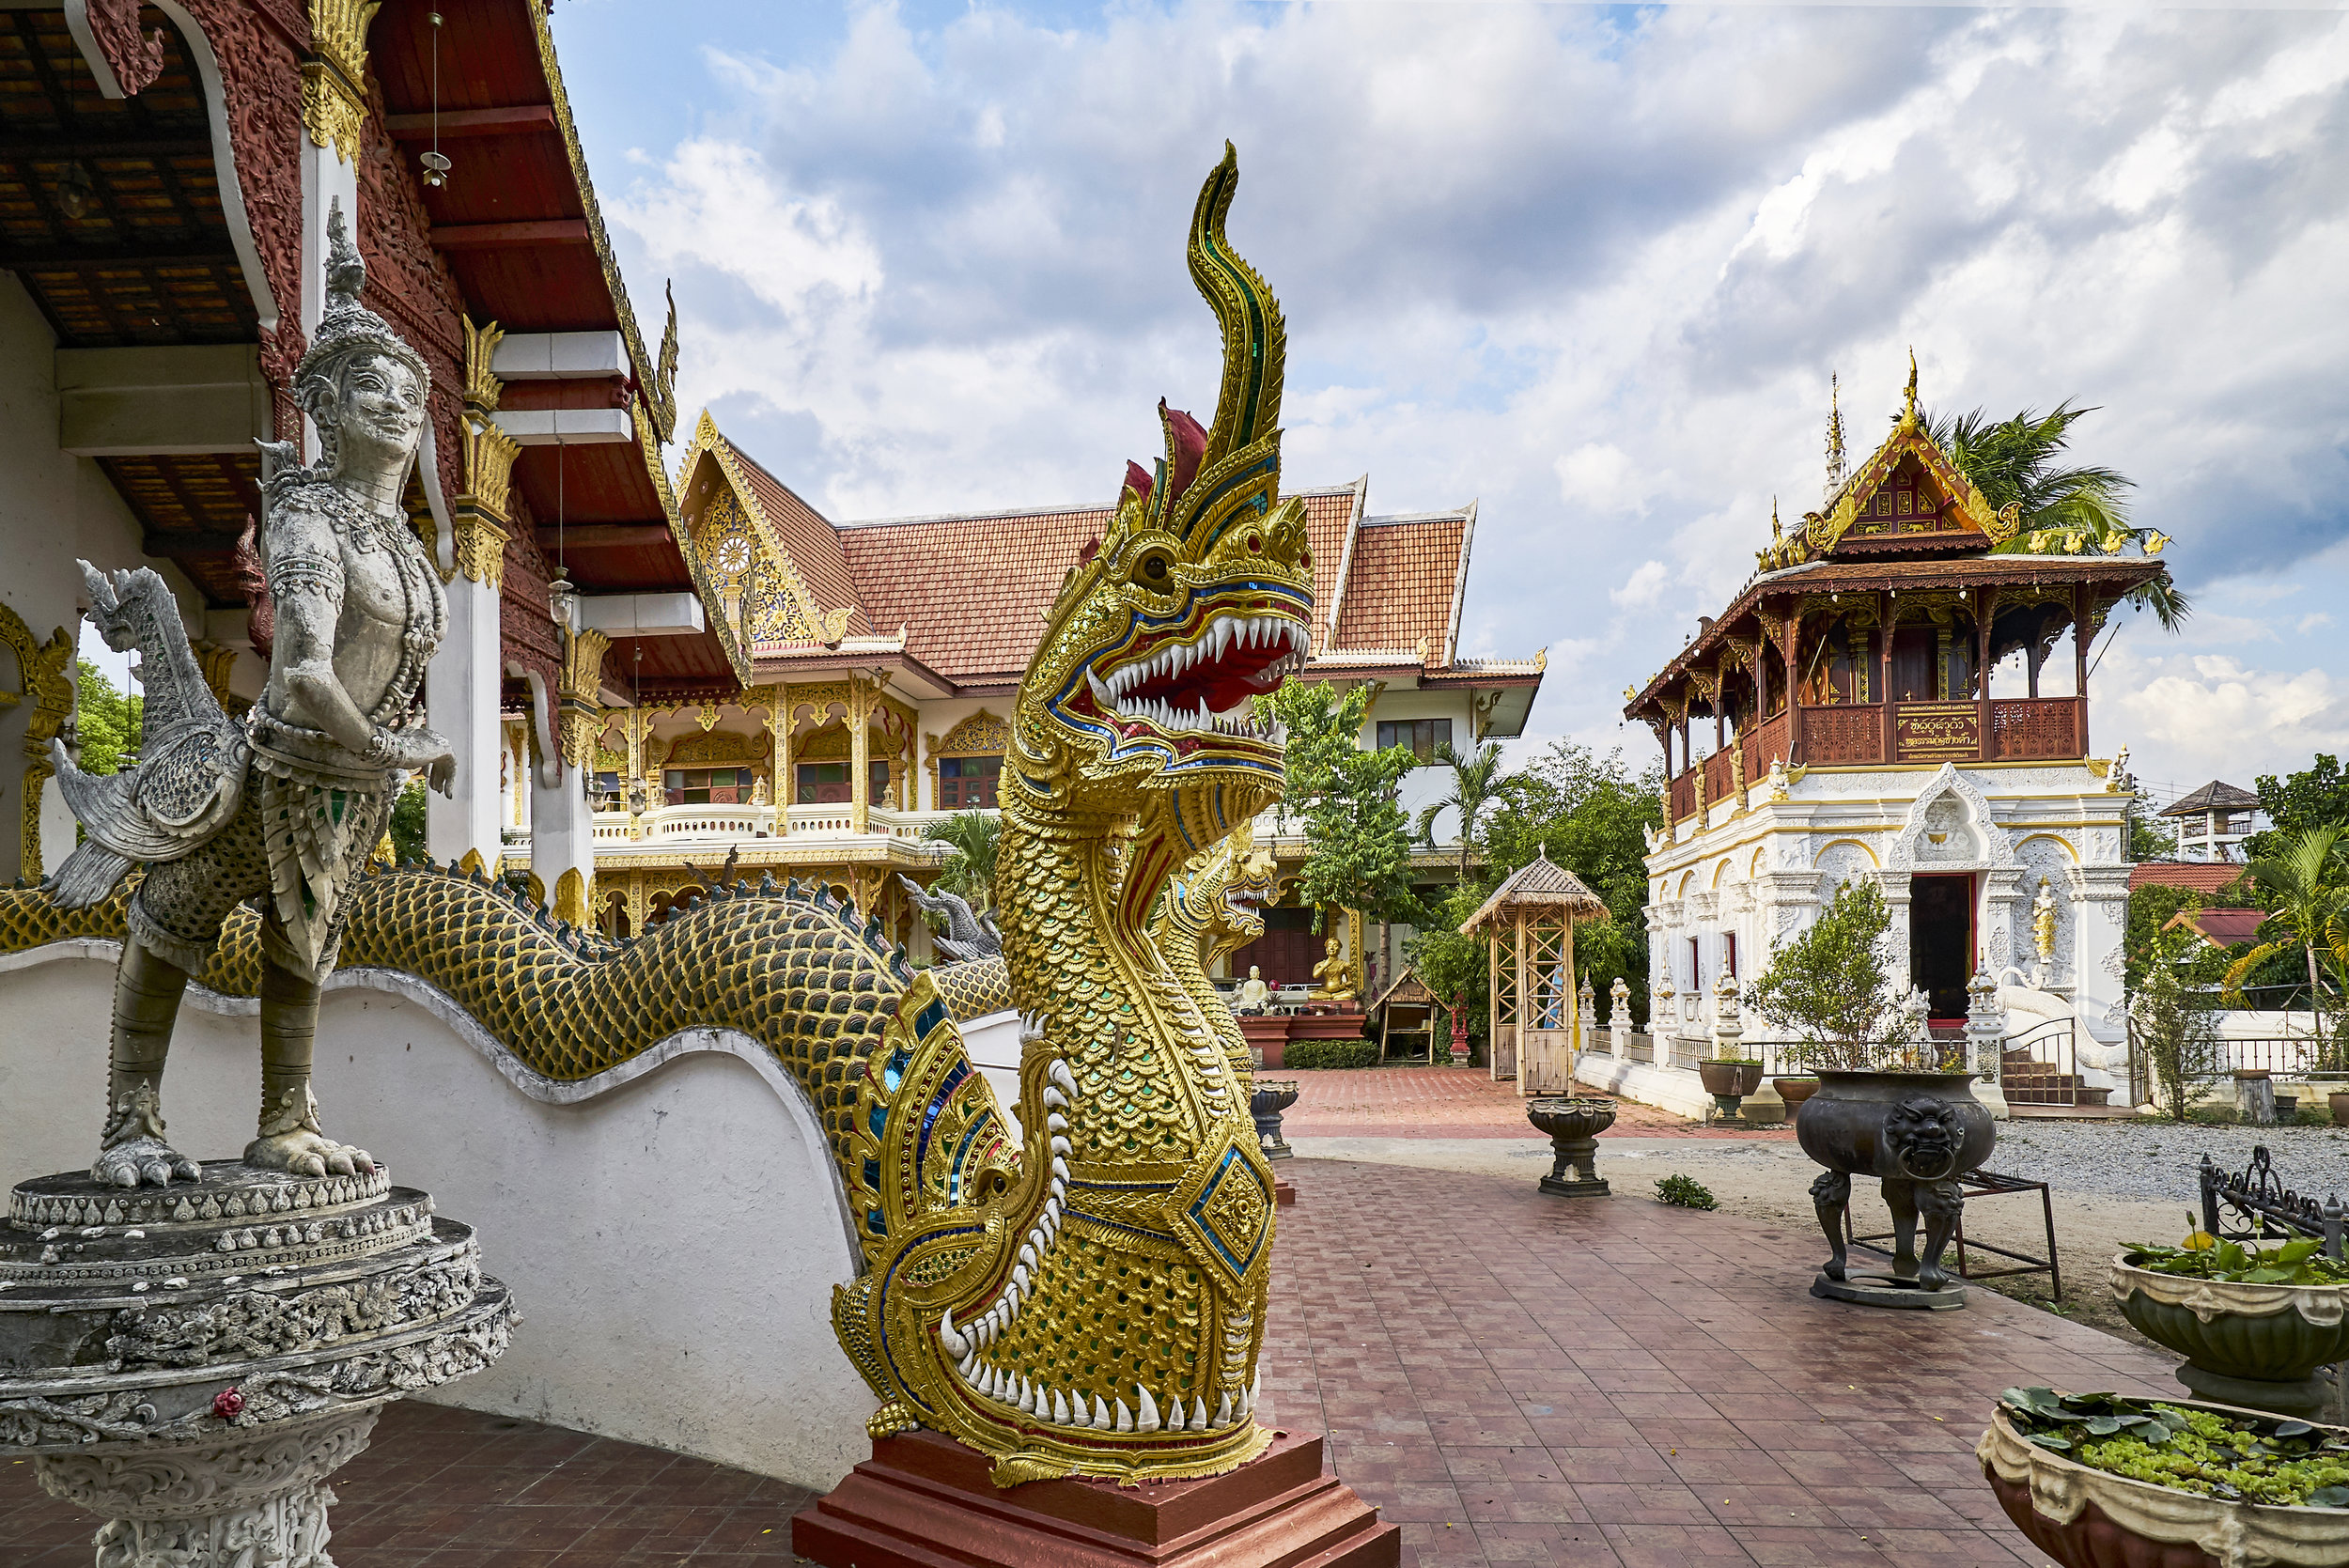 I'm purposefully not disclosing the location of this temple, so that when YOU co to Chiang Mai, you might walk or ride around and discover it on your own